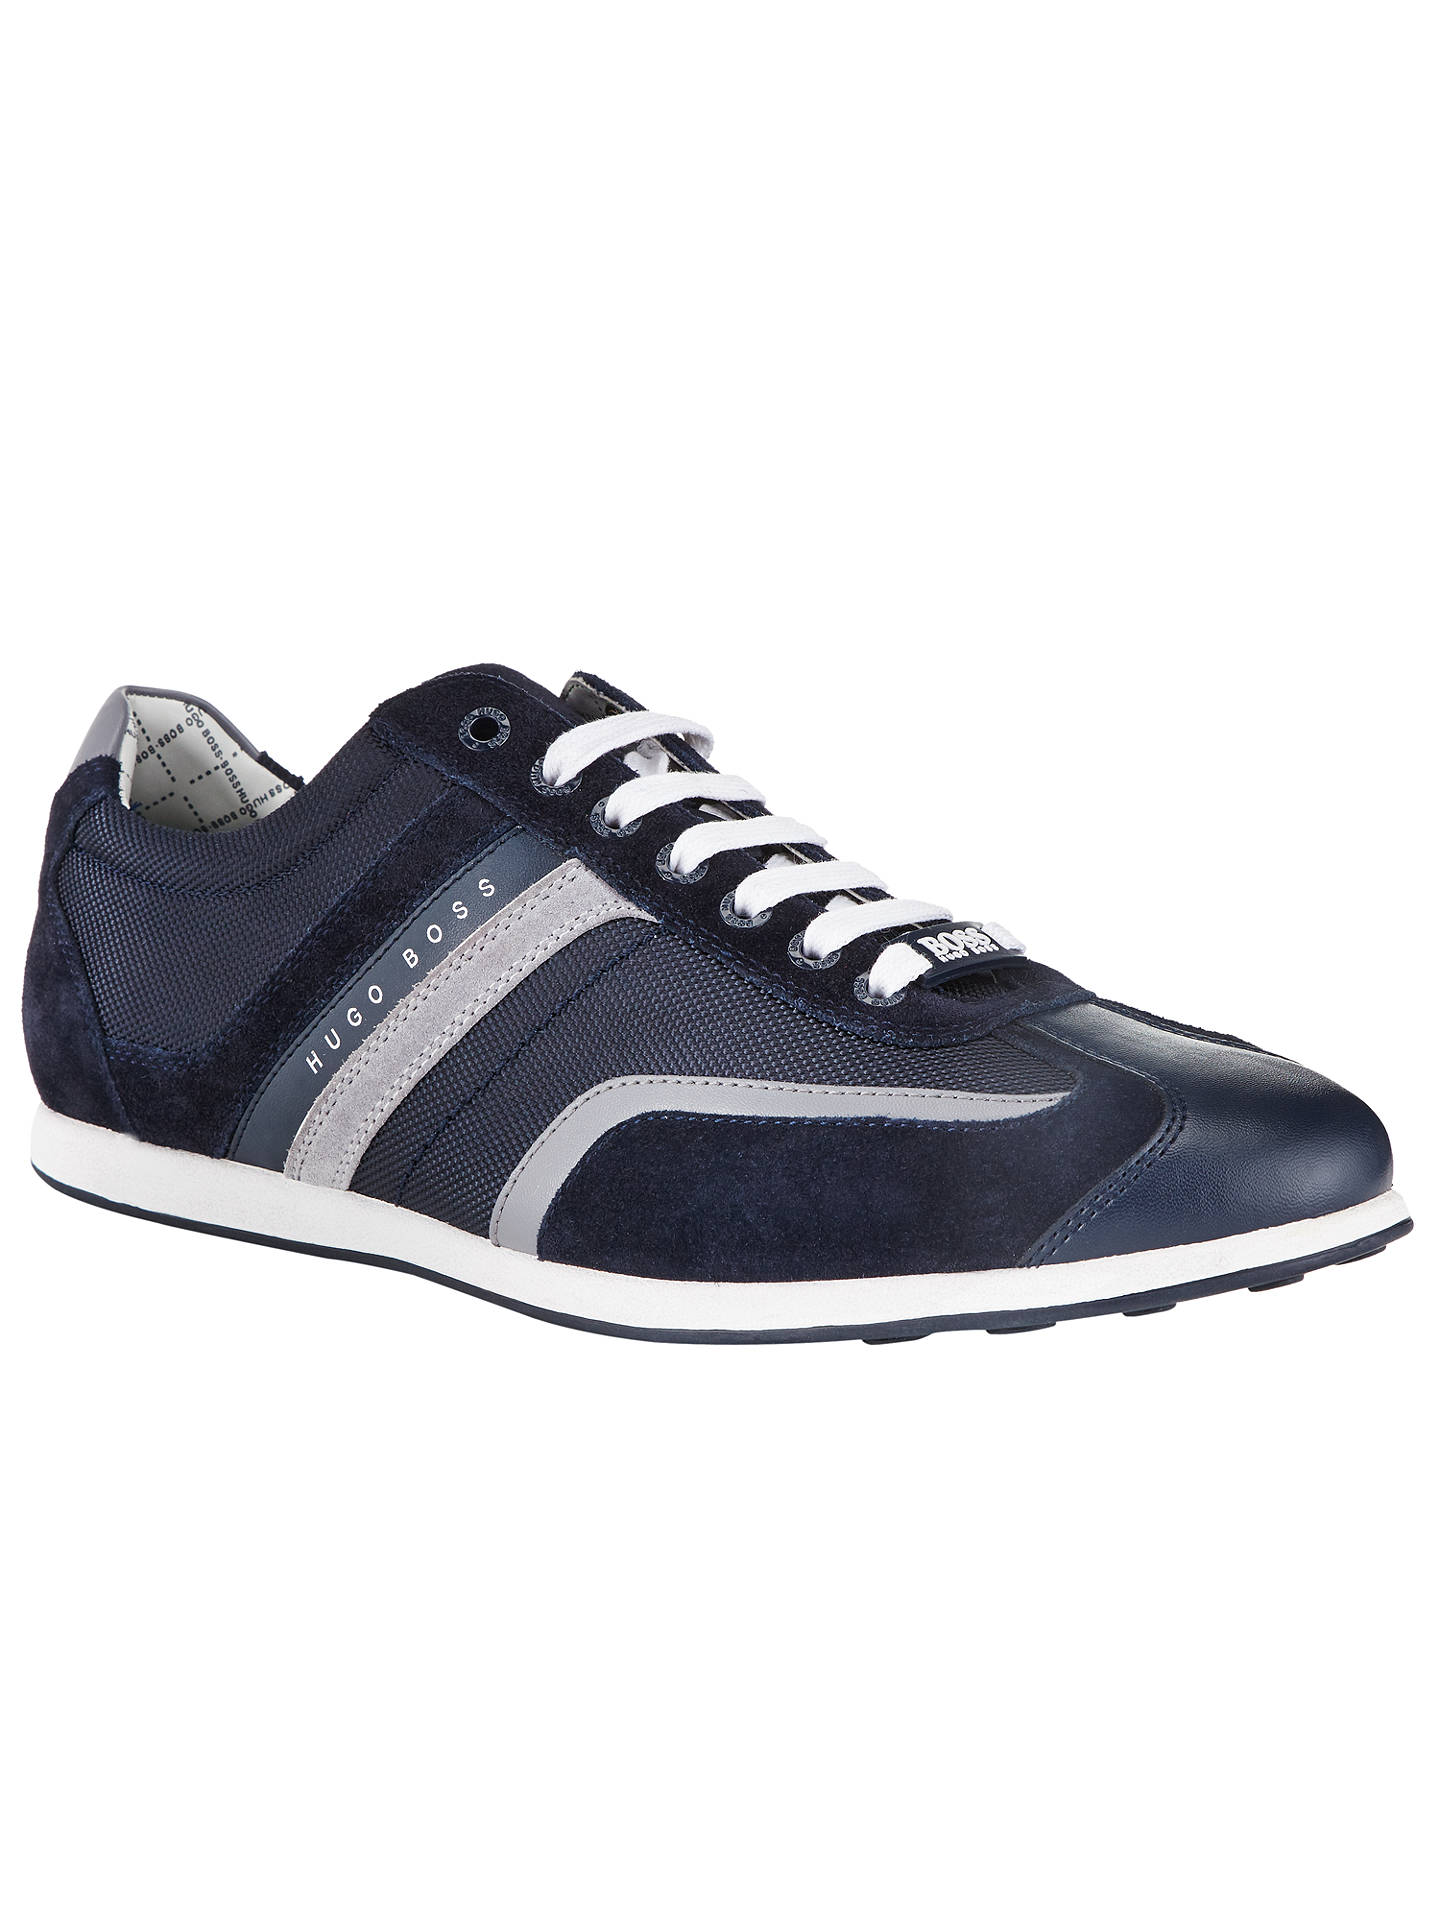 92a34b5c7 Buy BOSS Green Stiven Trainers, Blue, 7 Online at johnlewis.com ...